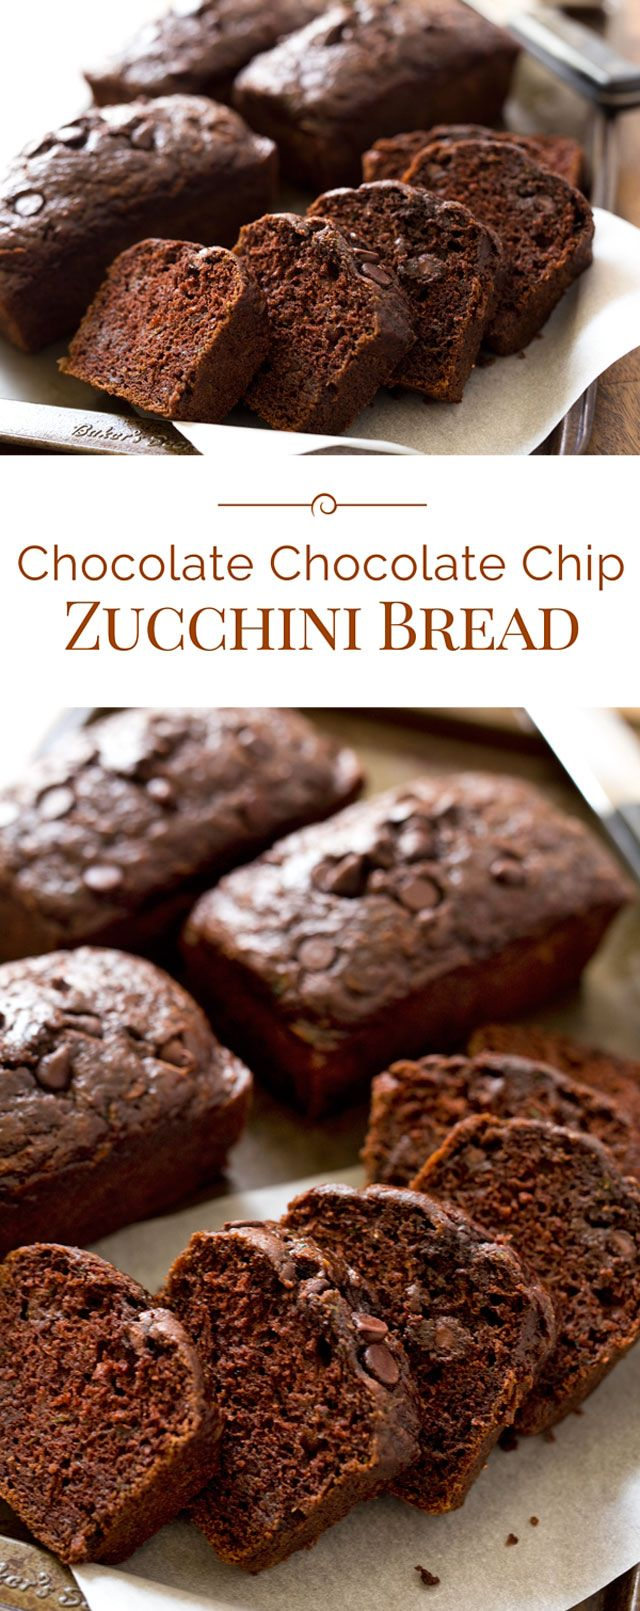 This Chocolate Chocolate Chip Zucchini Bread is a moist, delicious…